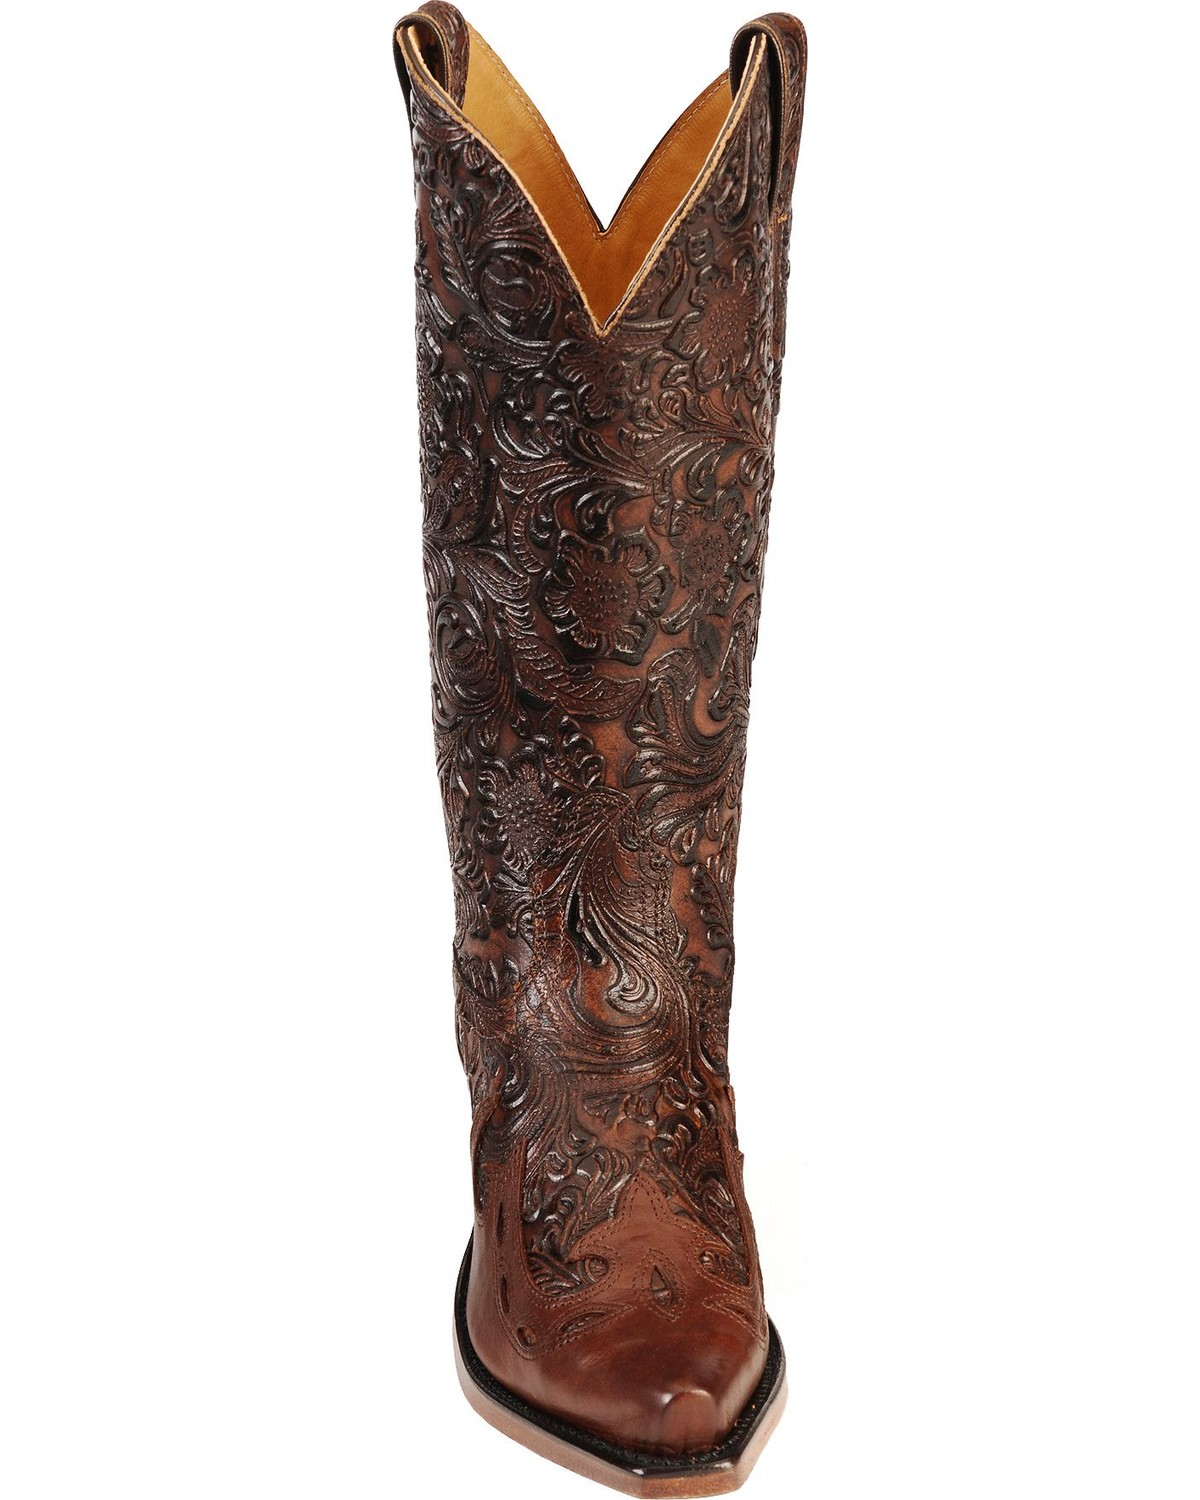 Welcome to projectaurora.tk, the #1 western wear and boot store on the web. We have the world's largest collection of cowboy apparel and outdoor work clothes with over 27, Styles & 14,, items.